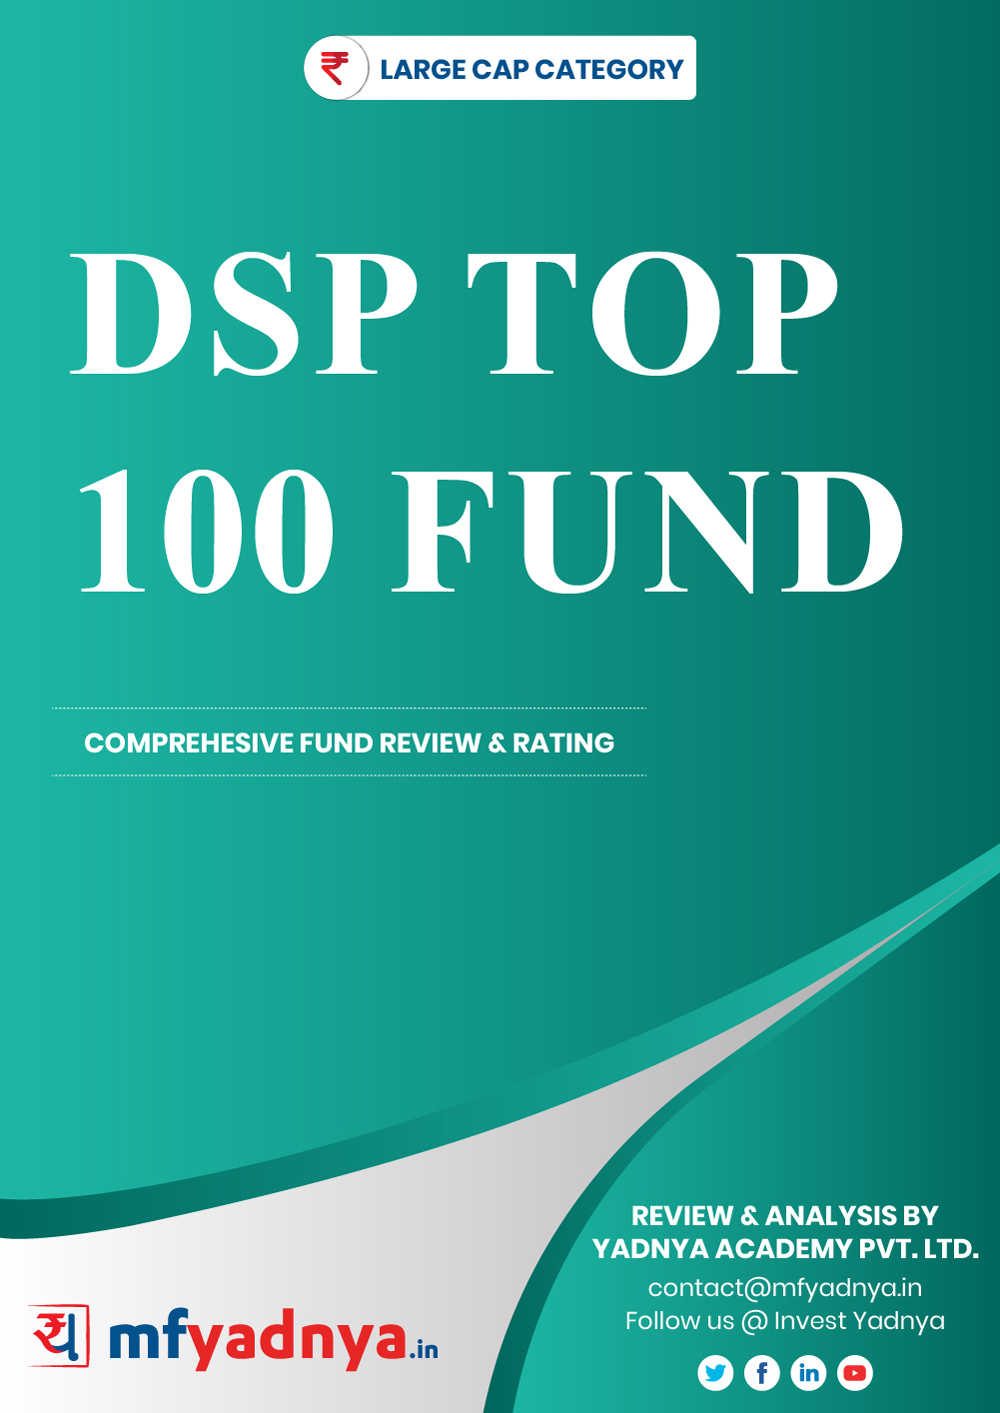 Large Cap Category Review - DSP Top 100  Fund. Most Comprehensive and detailed MF review based on Yadnya's proprietary methodology of Green, Yellow & Red Star. Detailed Analysis & Review based on August 31st, 2019 data.